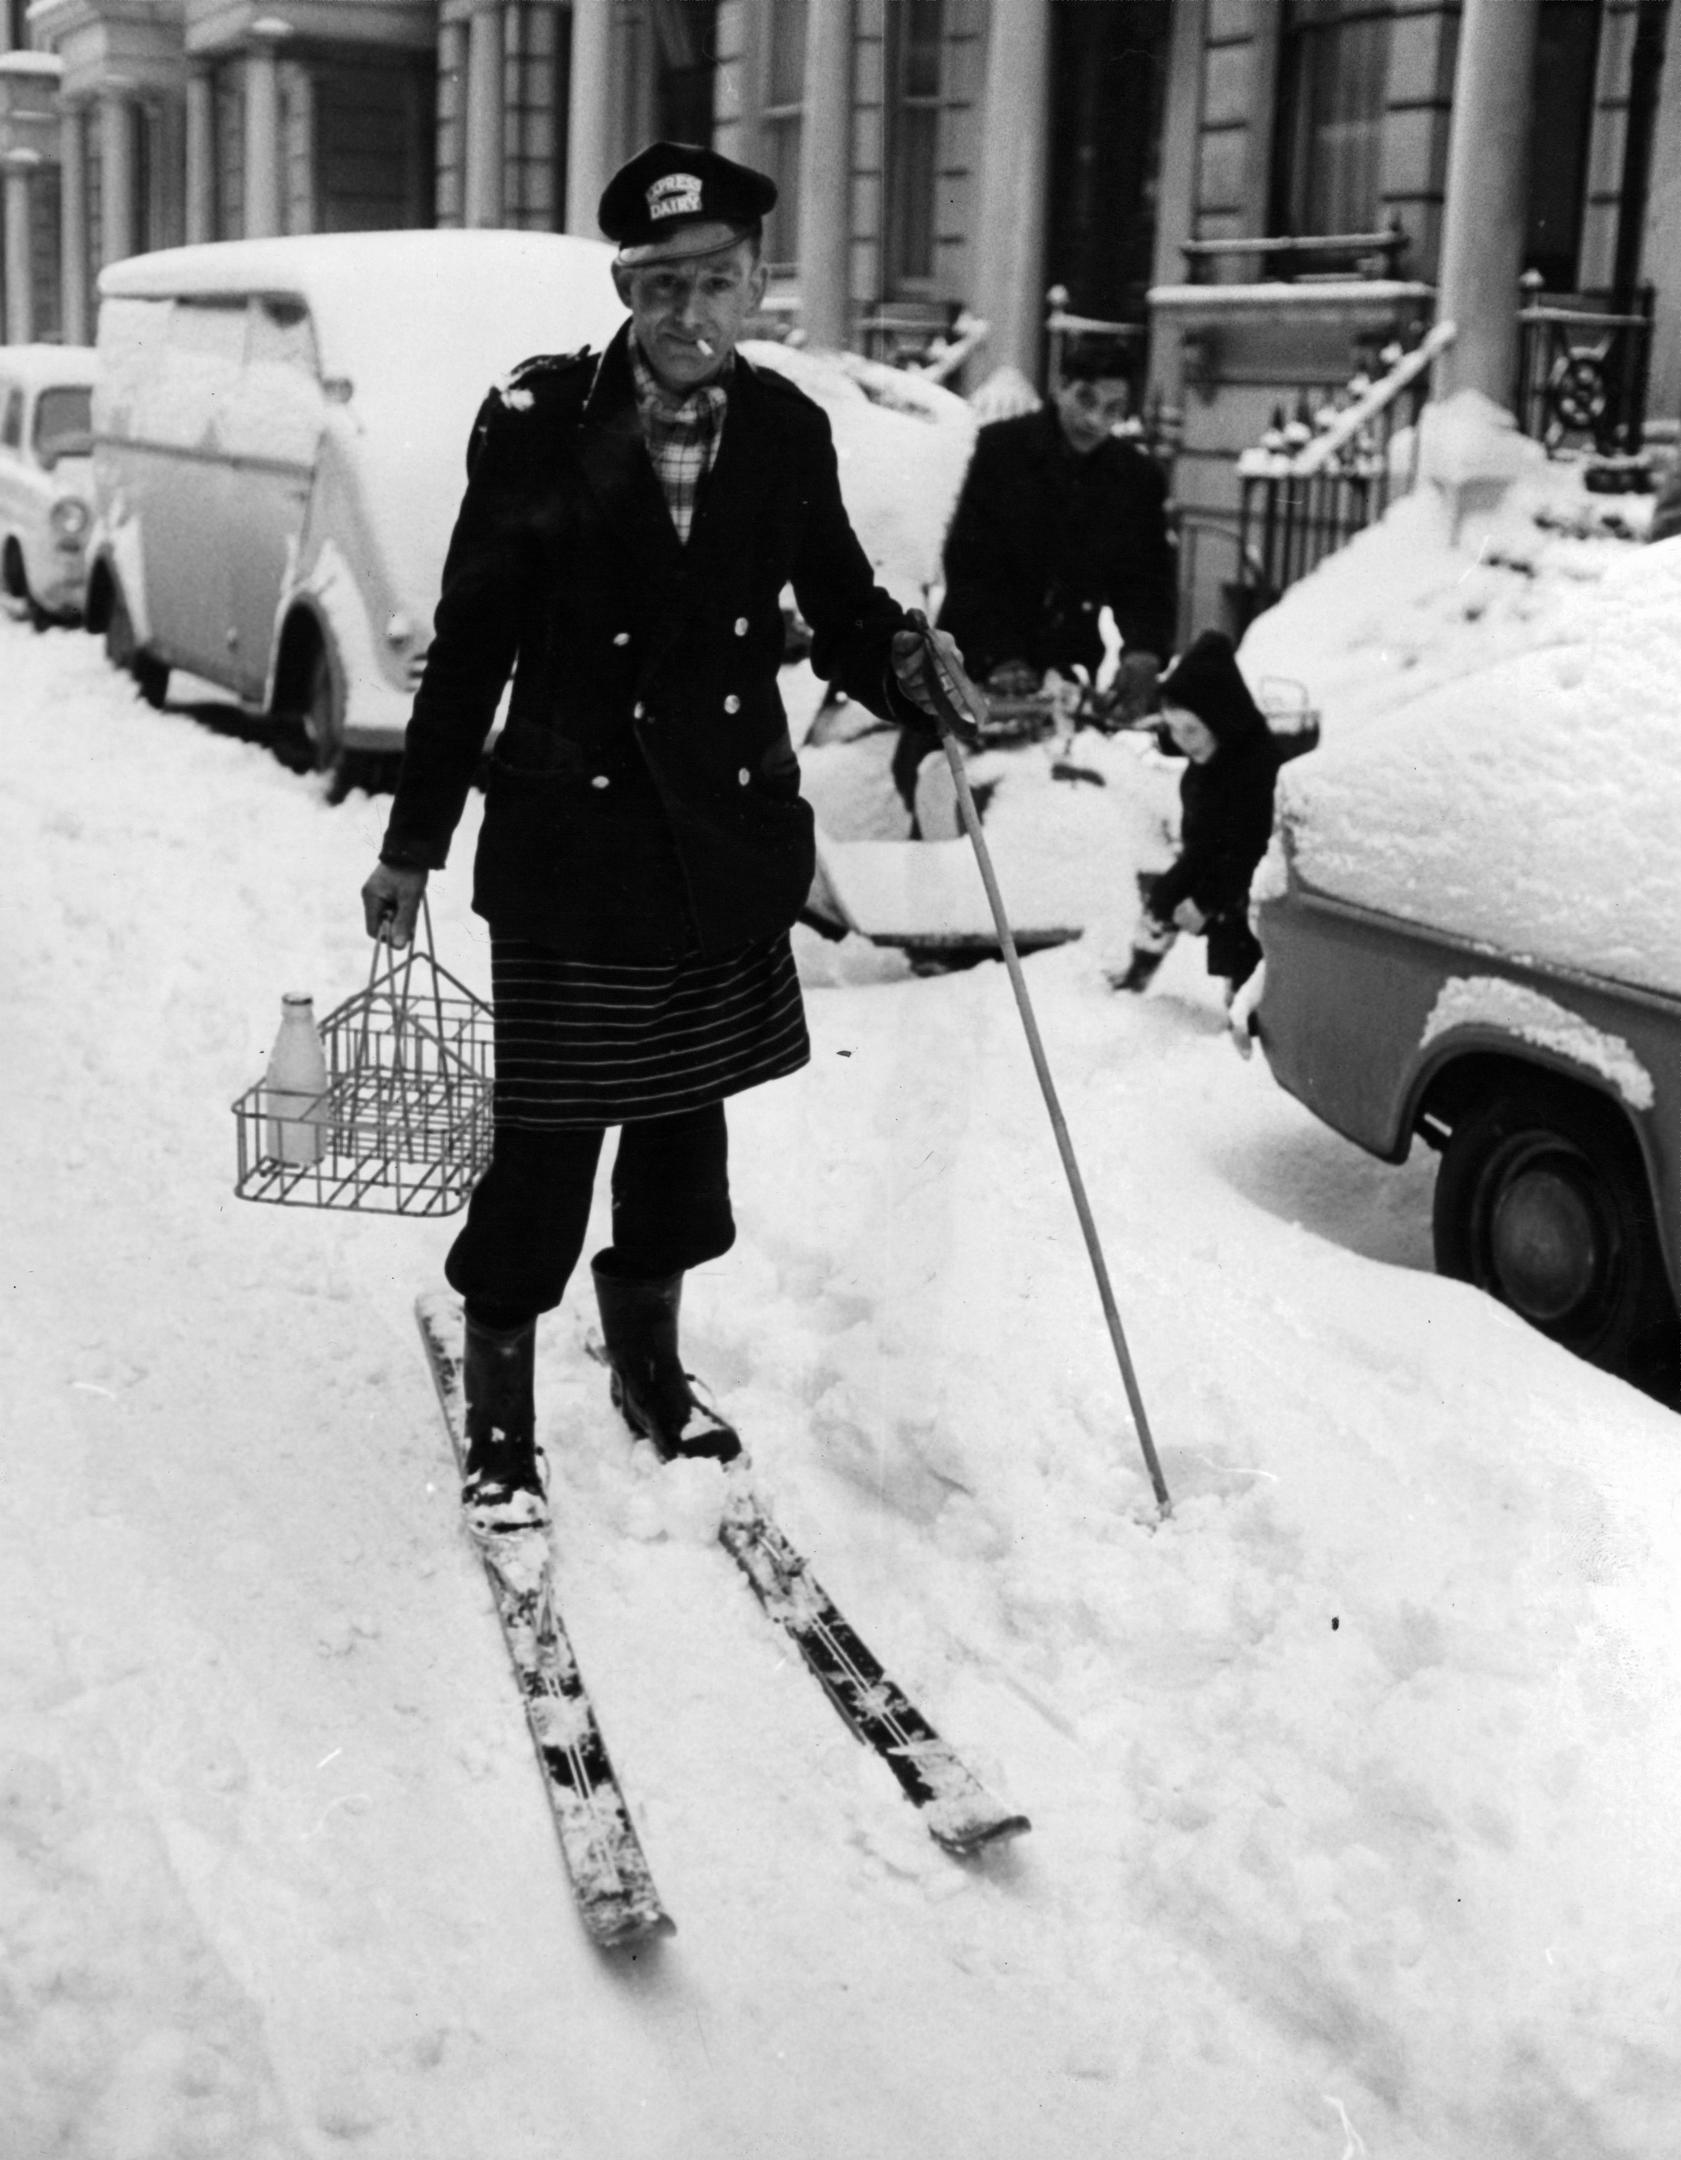 A milkman in London in December 1962 (Express/Hulton Archive/Getty Images)